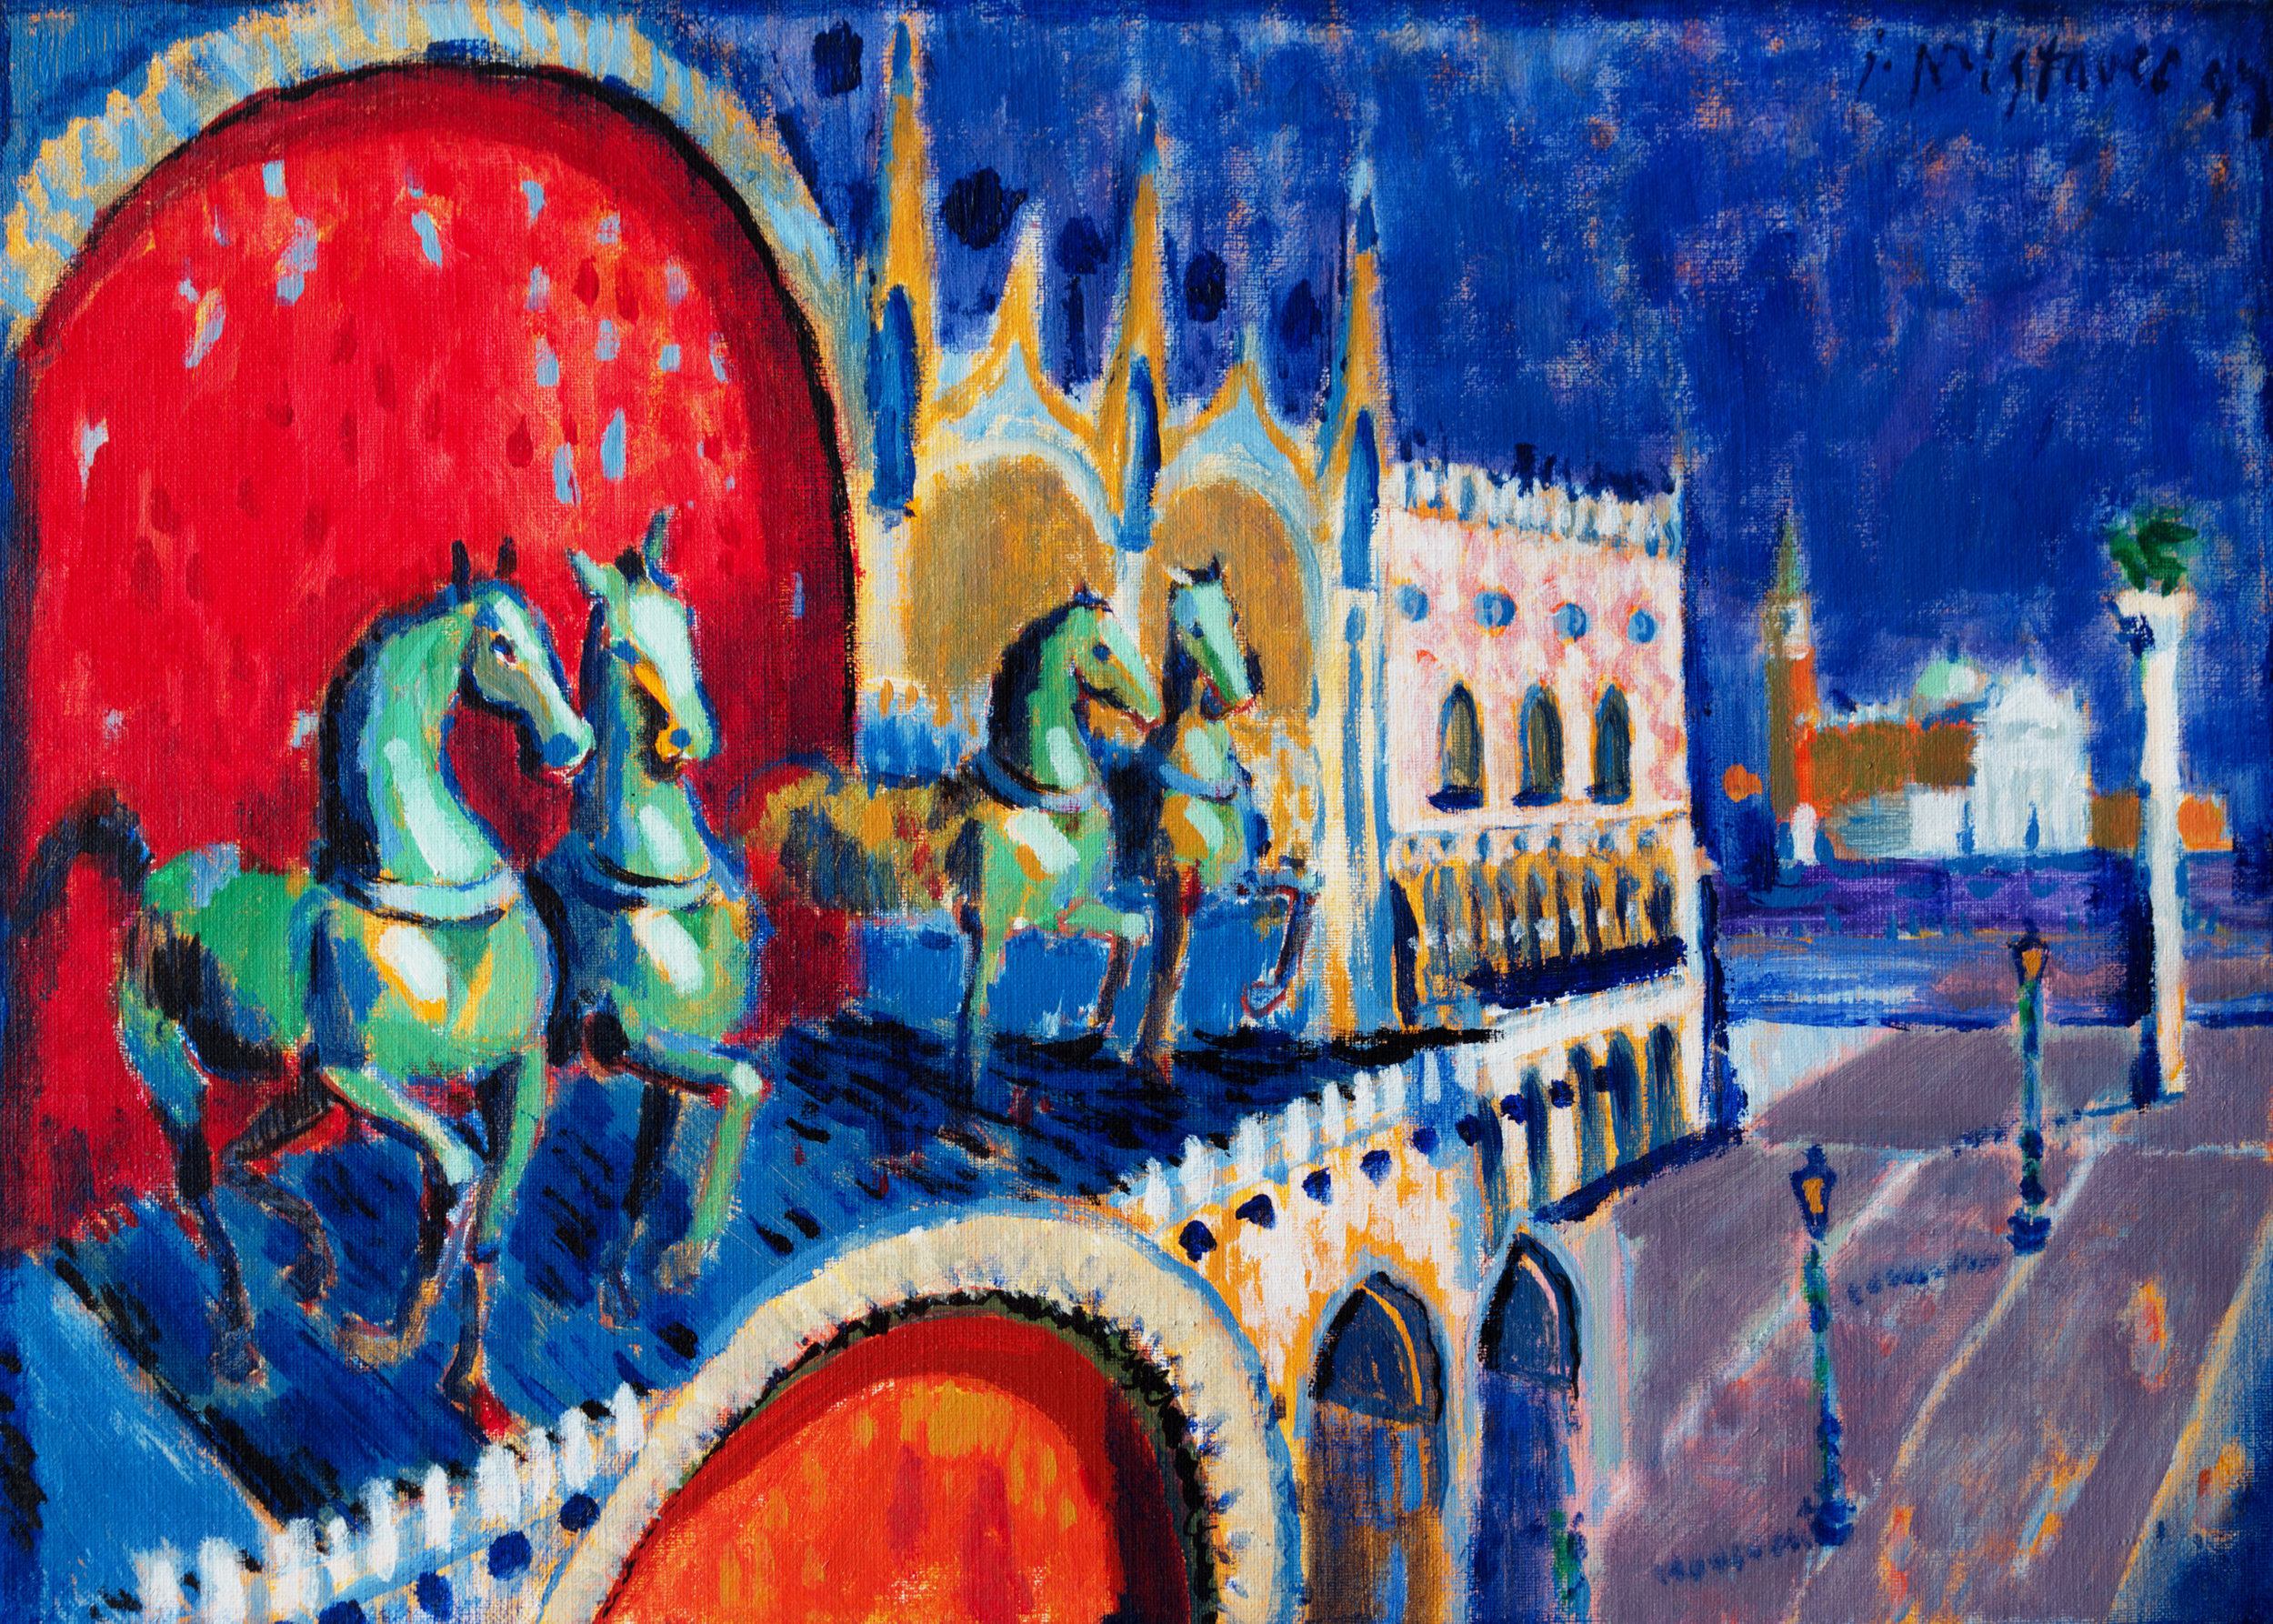 Trieste  / 1999 / oil on canvas / 70 x 50 cm